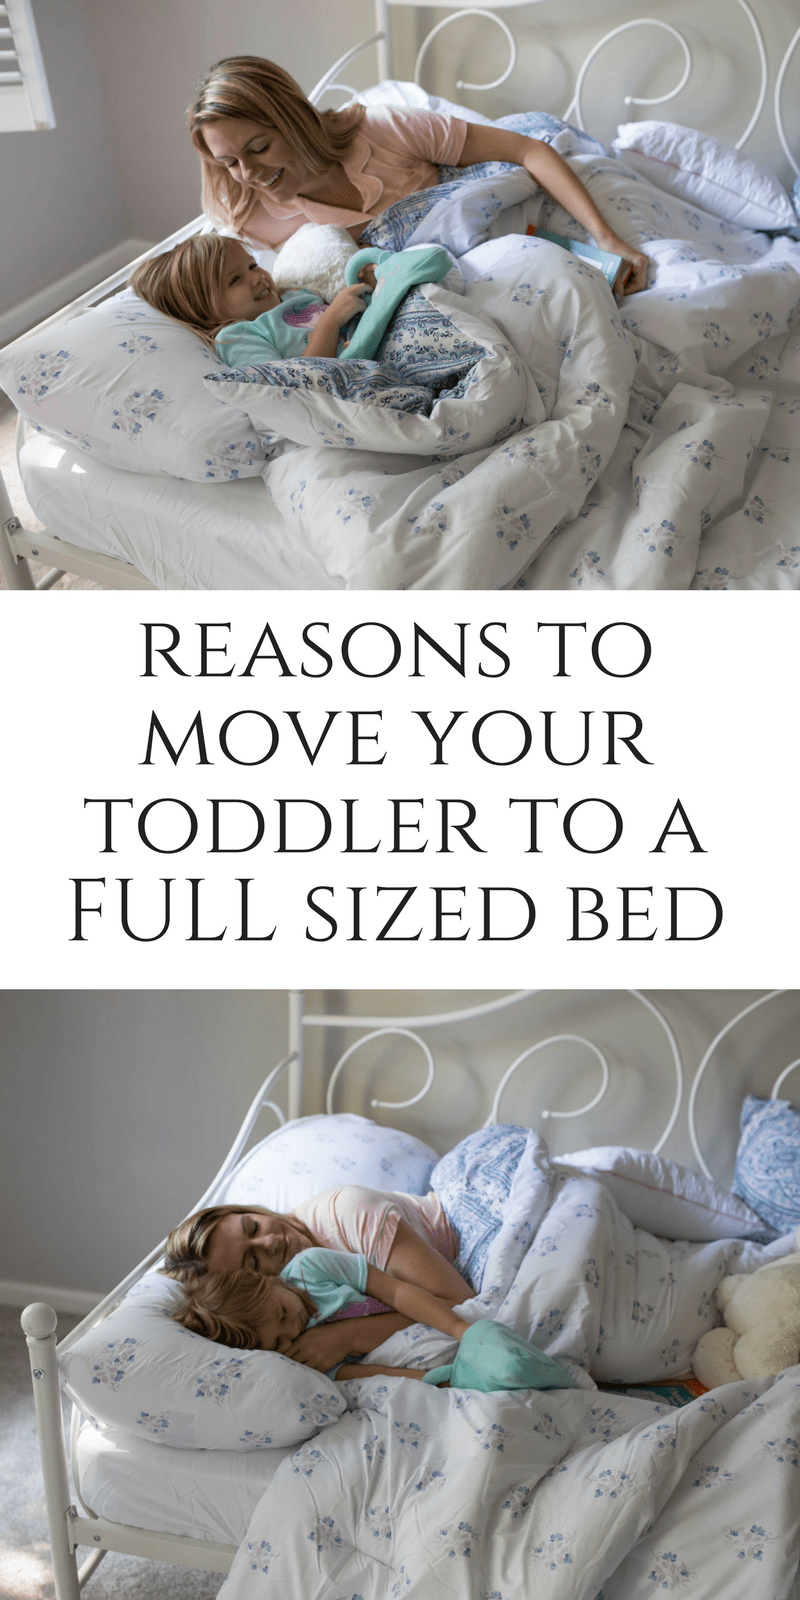 Reasons to move your toddler to a full sized bed by parenting blogger casual claire